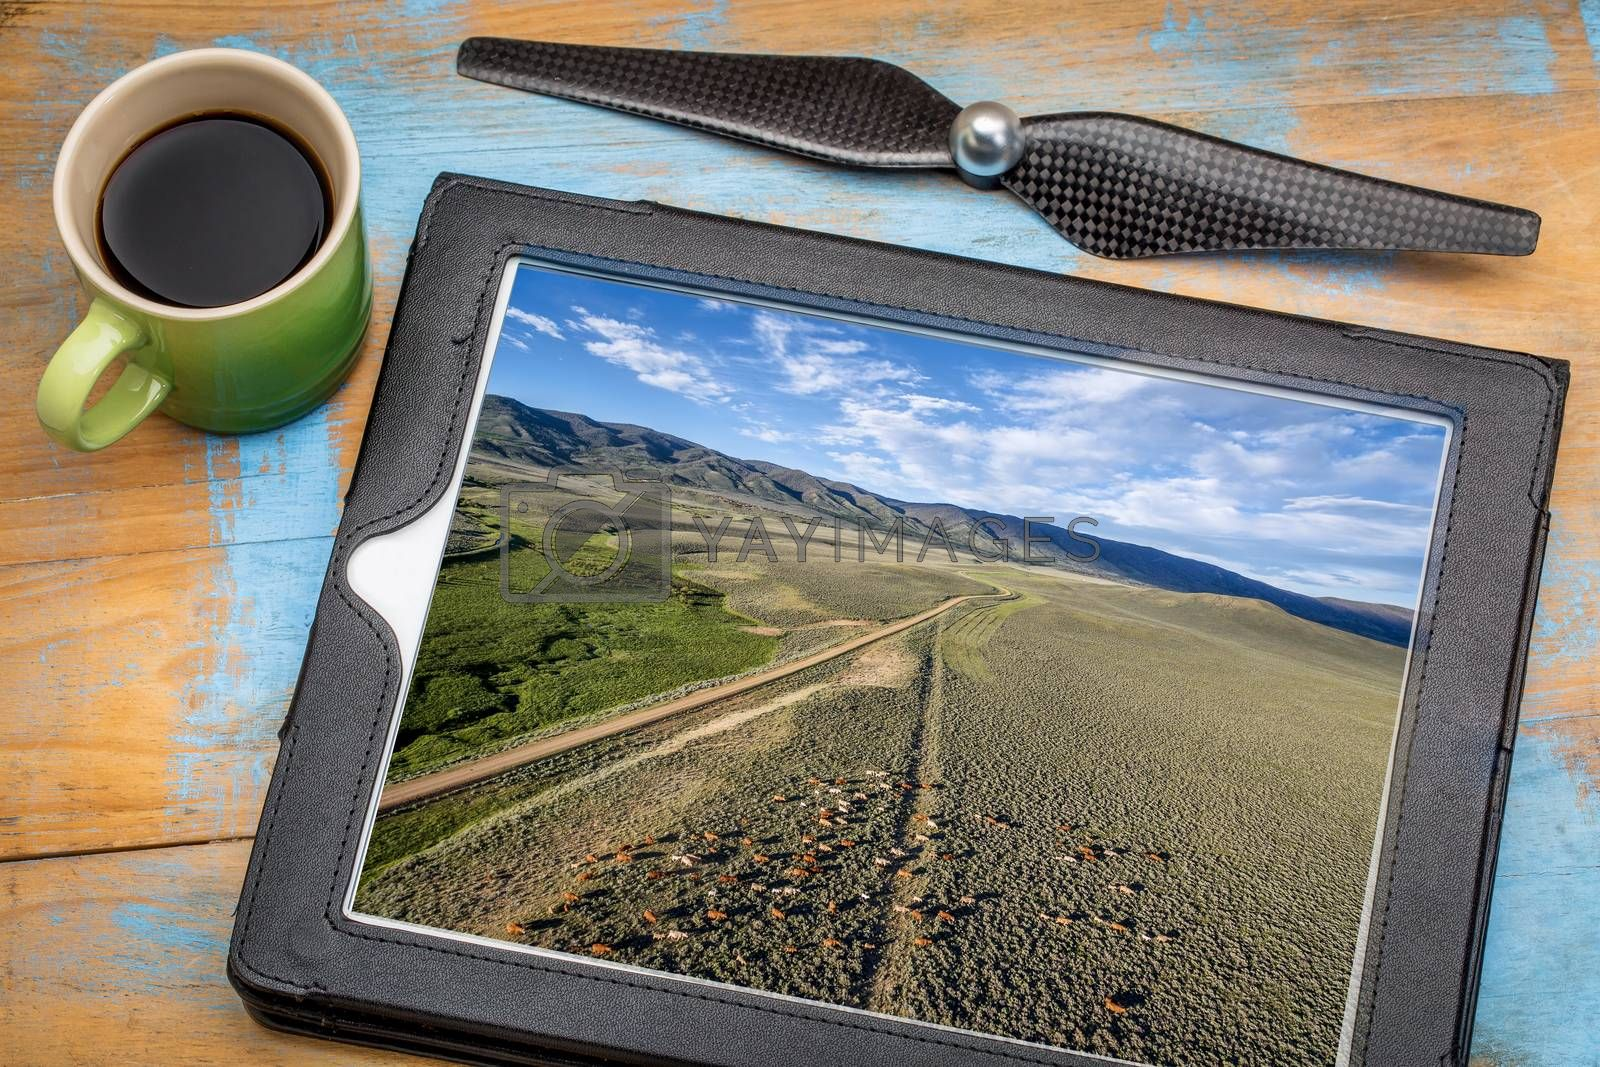 reviewing aerial picture on a digital tablet with a cup of coffee - foothills of Medicine Bow Mountains with a dirt road and cattle, North park, Colorado